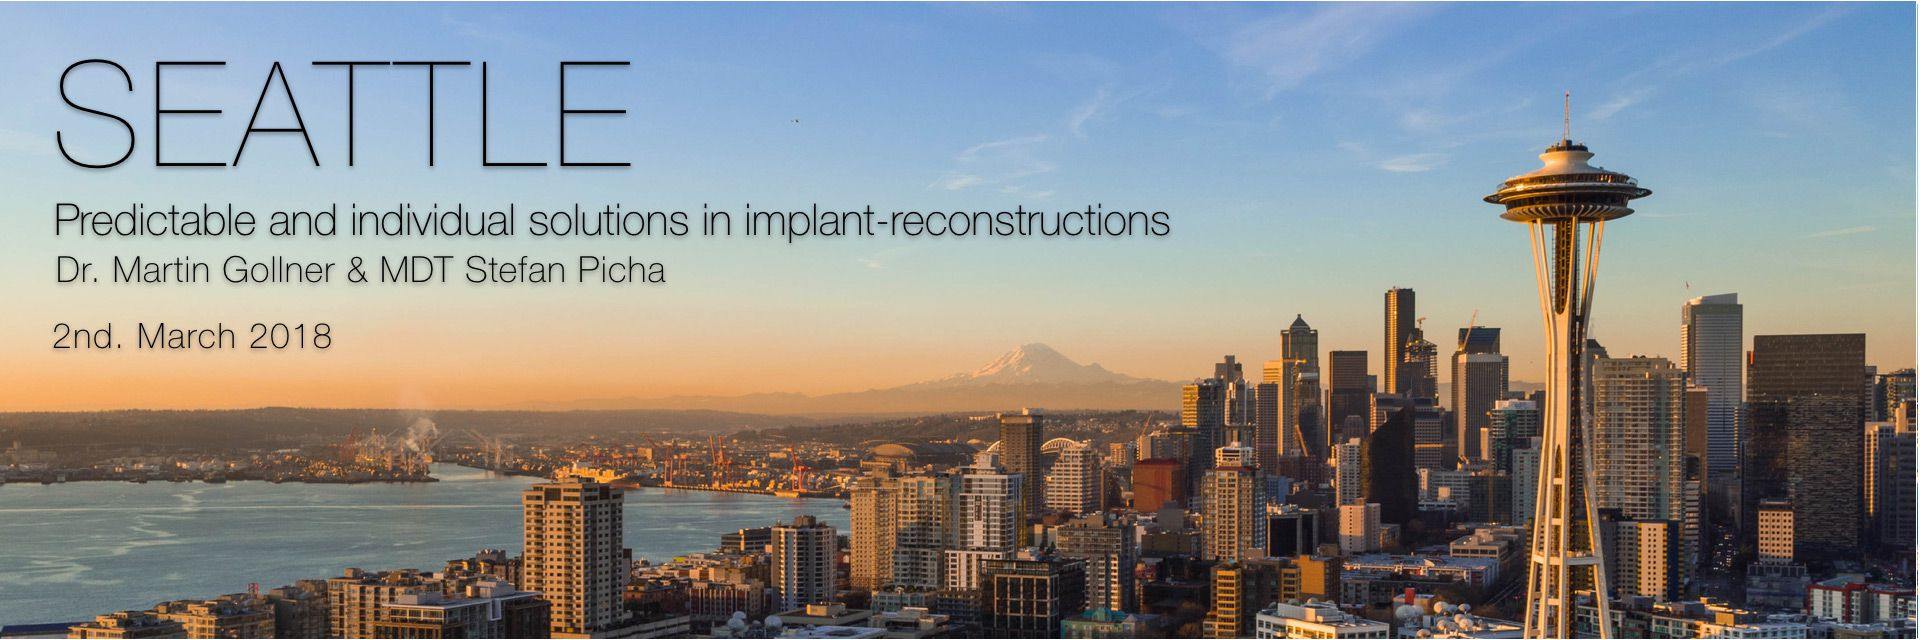 Predictable and individual solutions in implant-reconstructions - Seattle